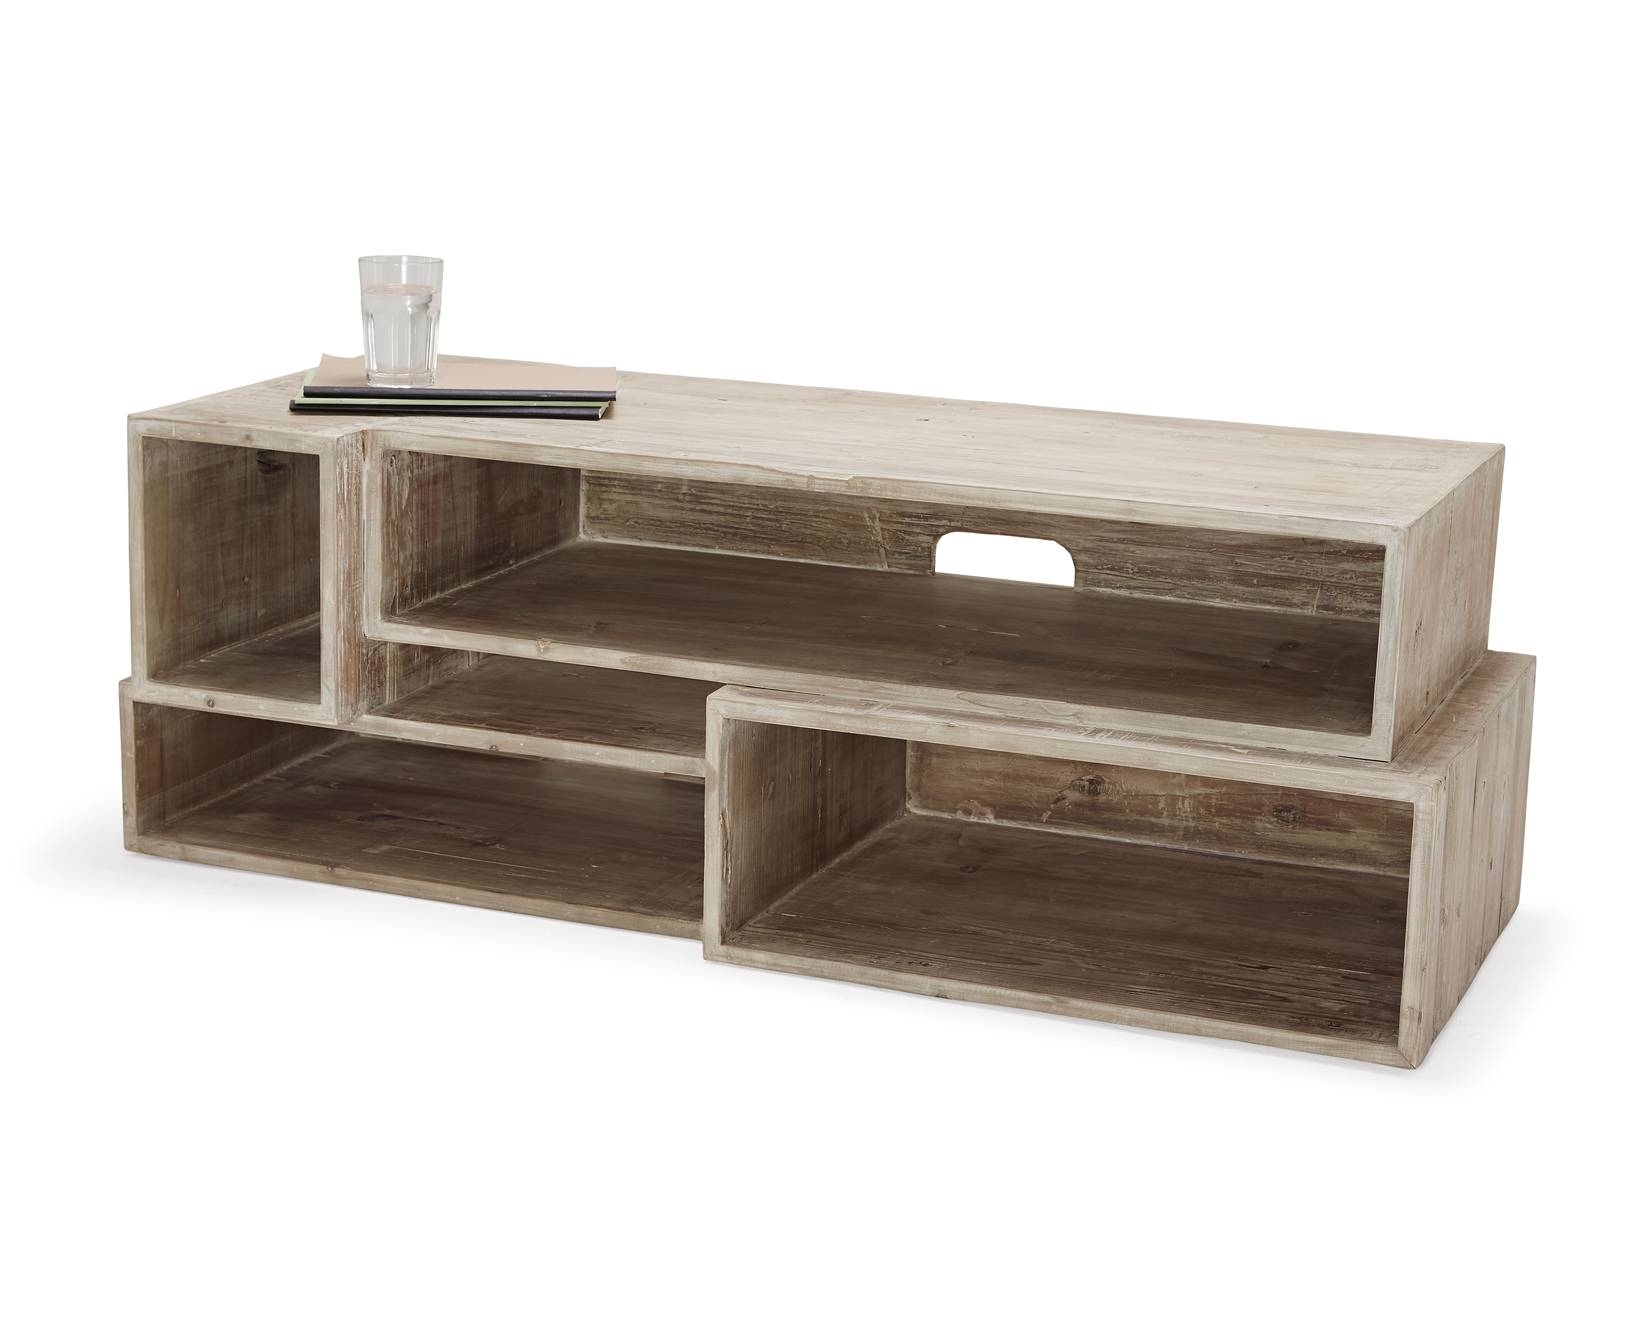 Tv Stands | Gorgeous Wooden Tv Stands | Loaf with regard to Telly Tv Stands (Image 14 of 15)